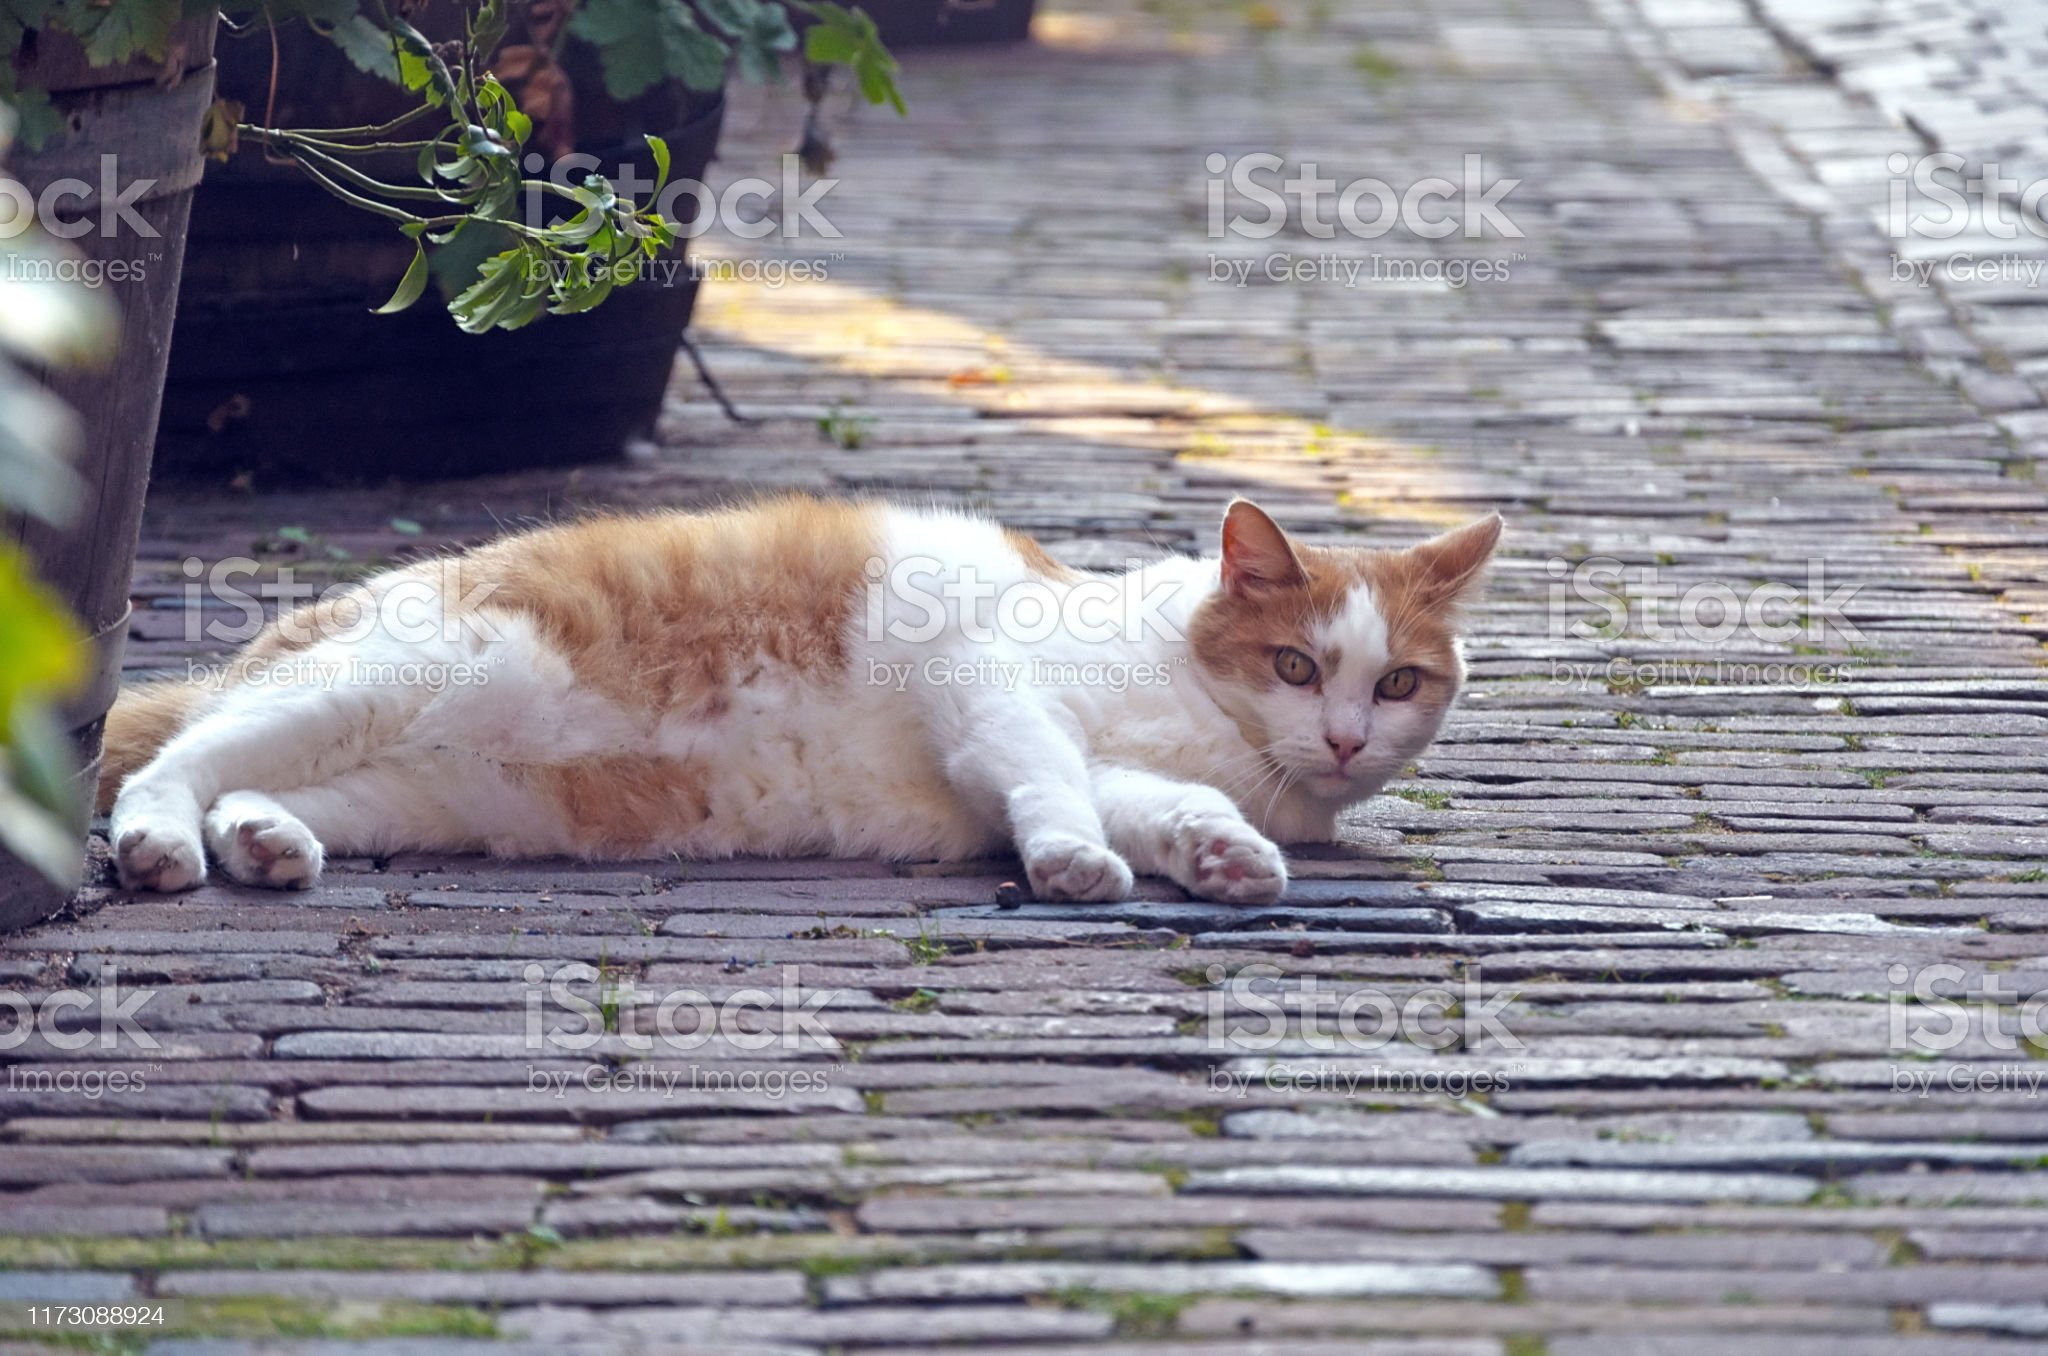 cat-lying-on-the-street-relax-and-looks-